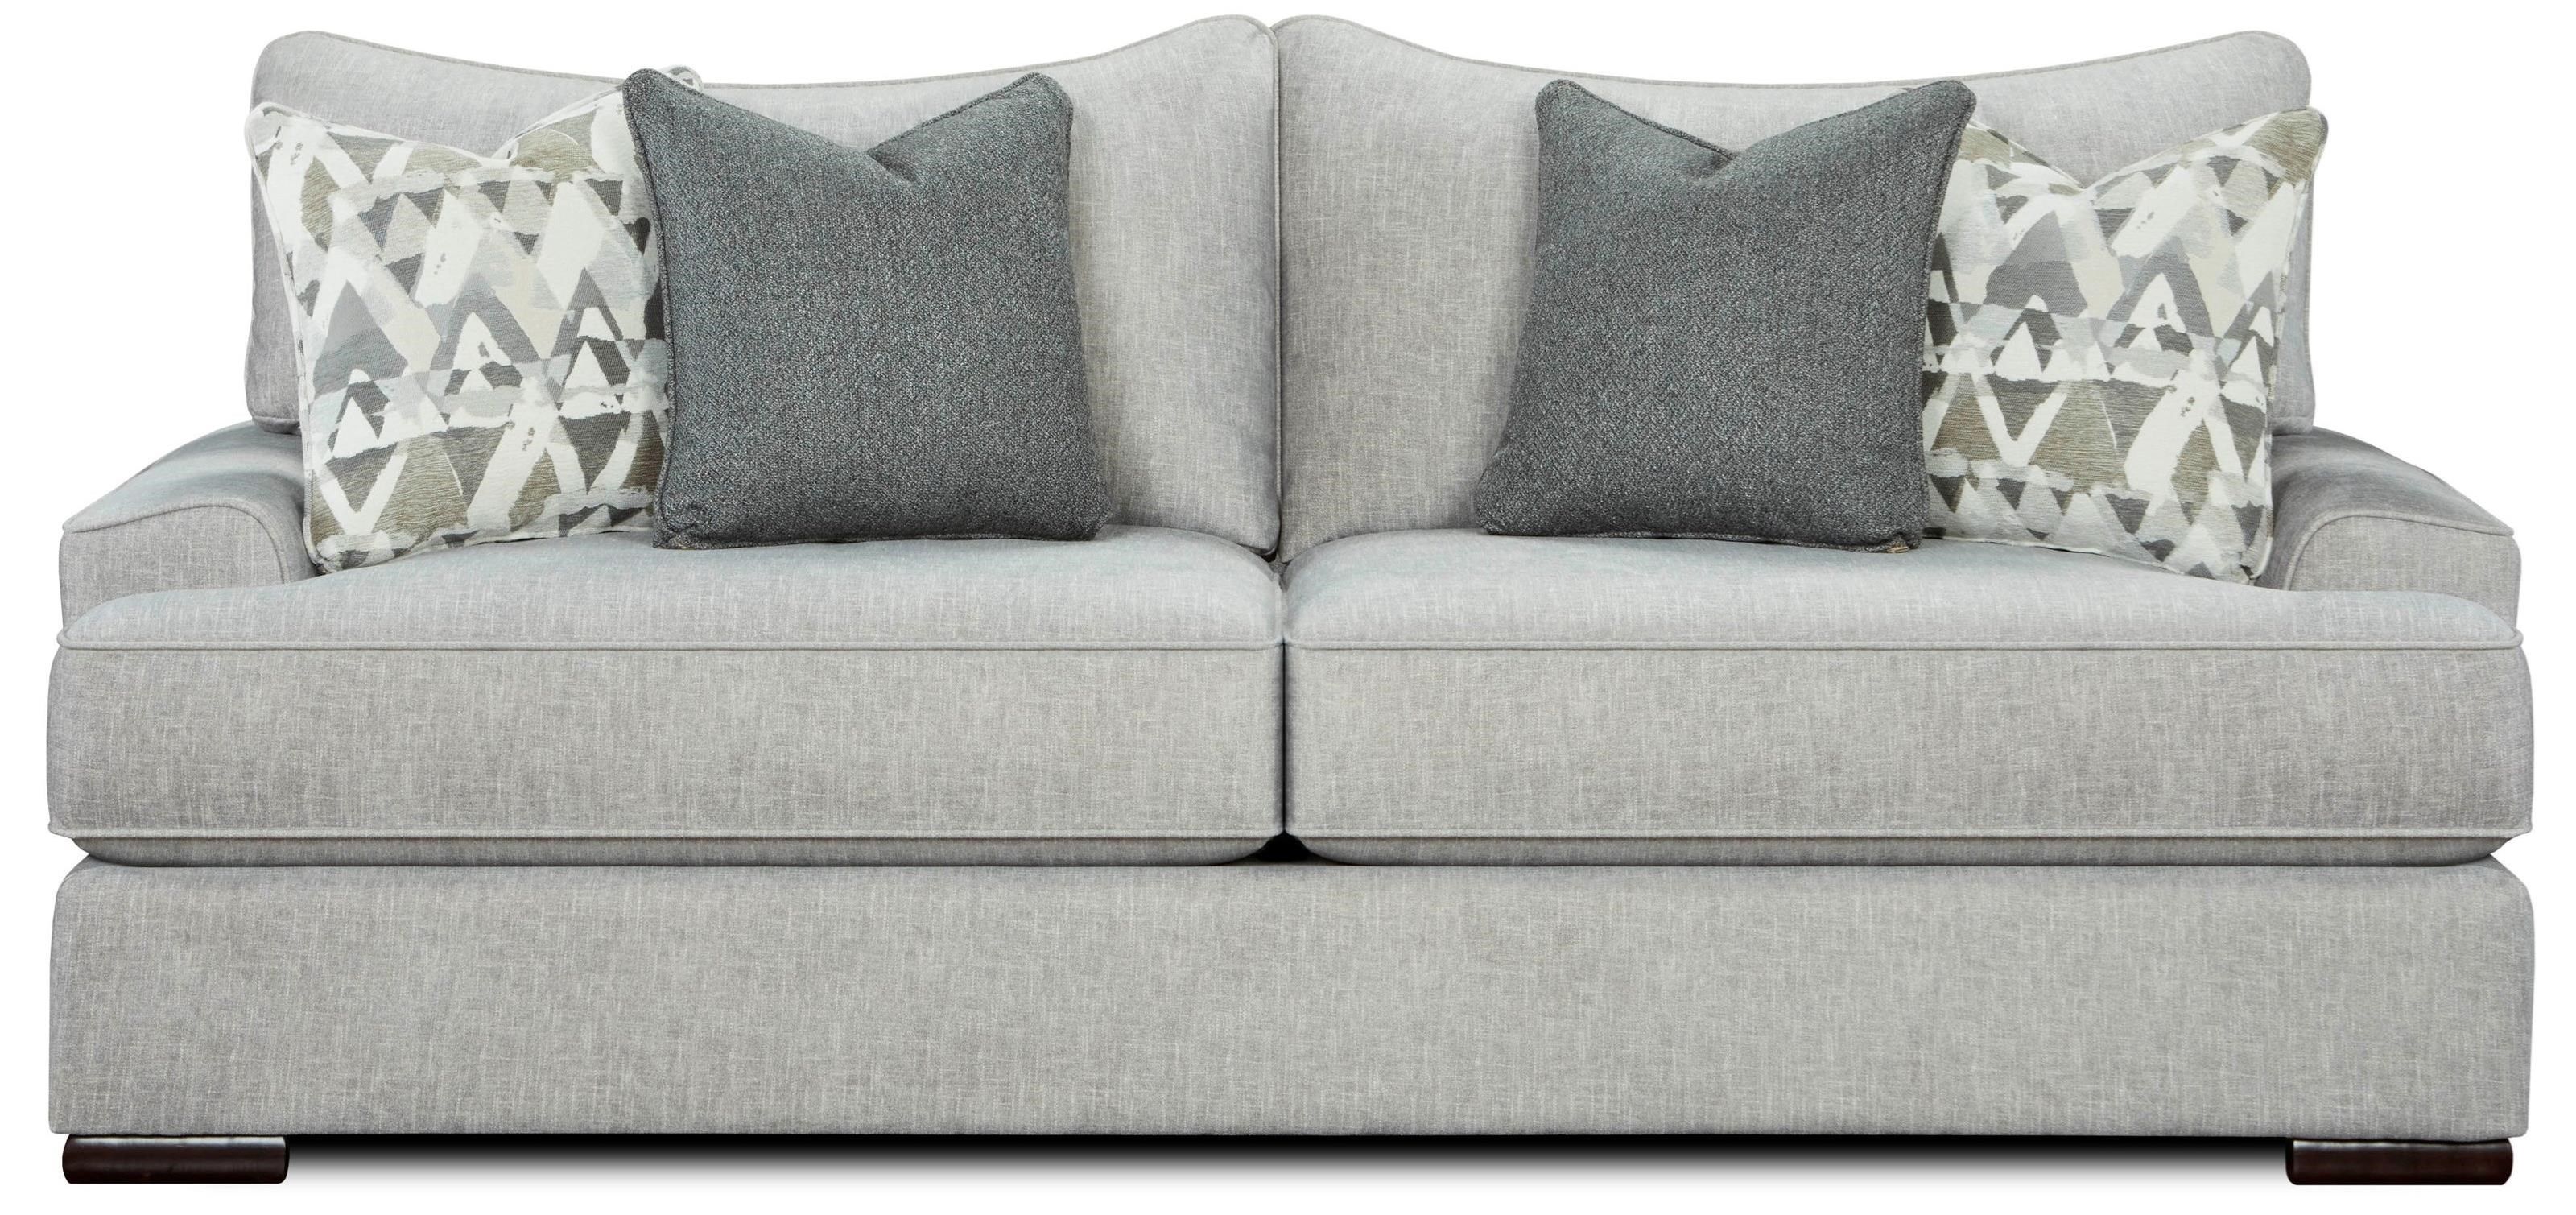 2010 Sofa by FN at Lindy's Furniture Company